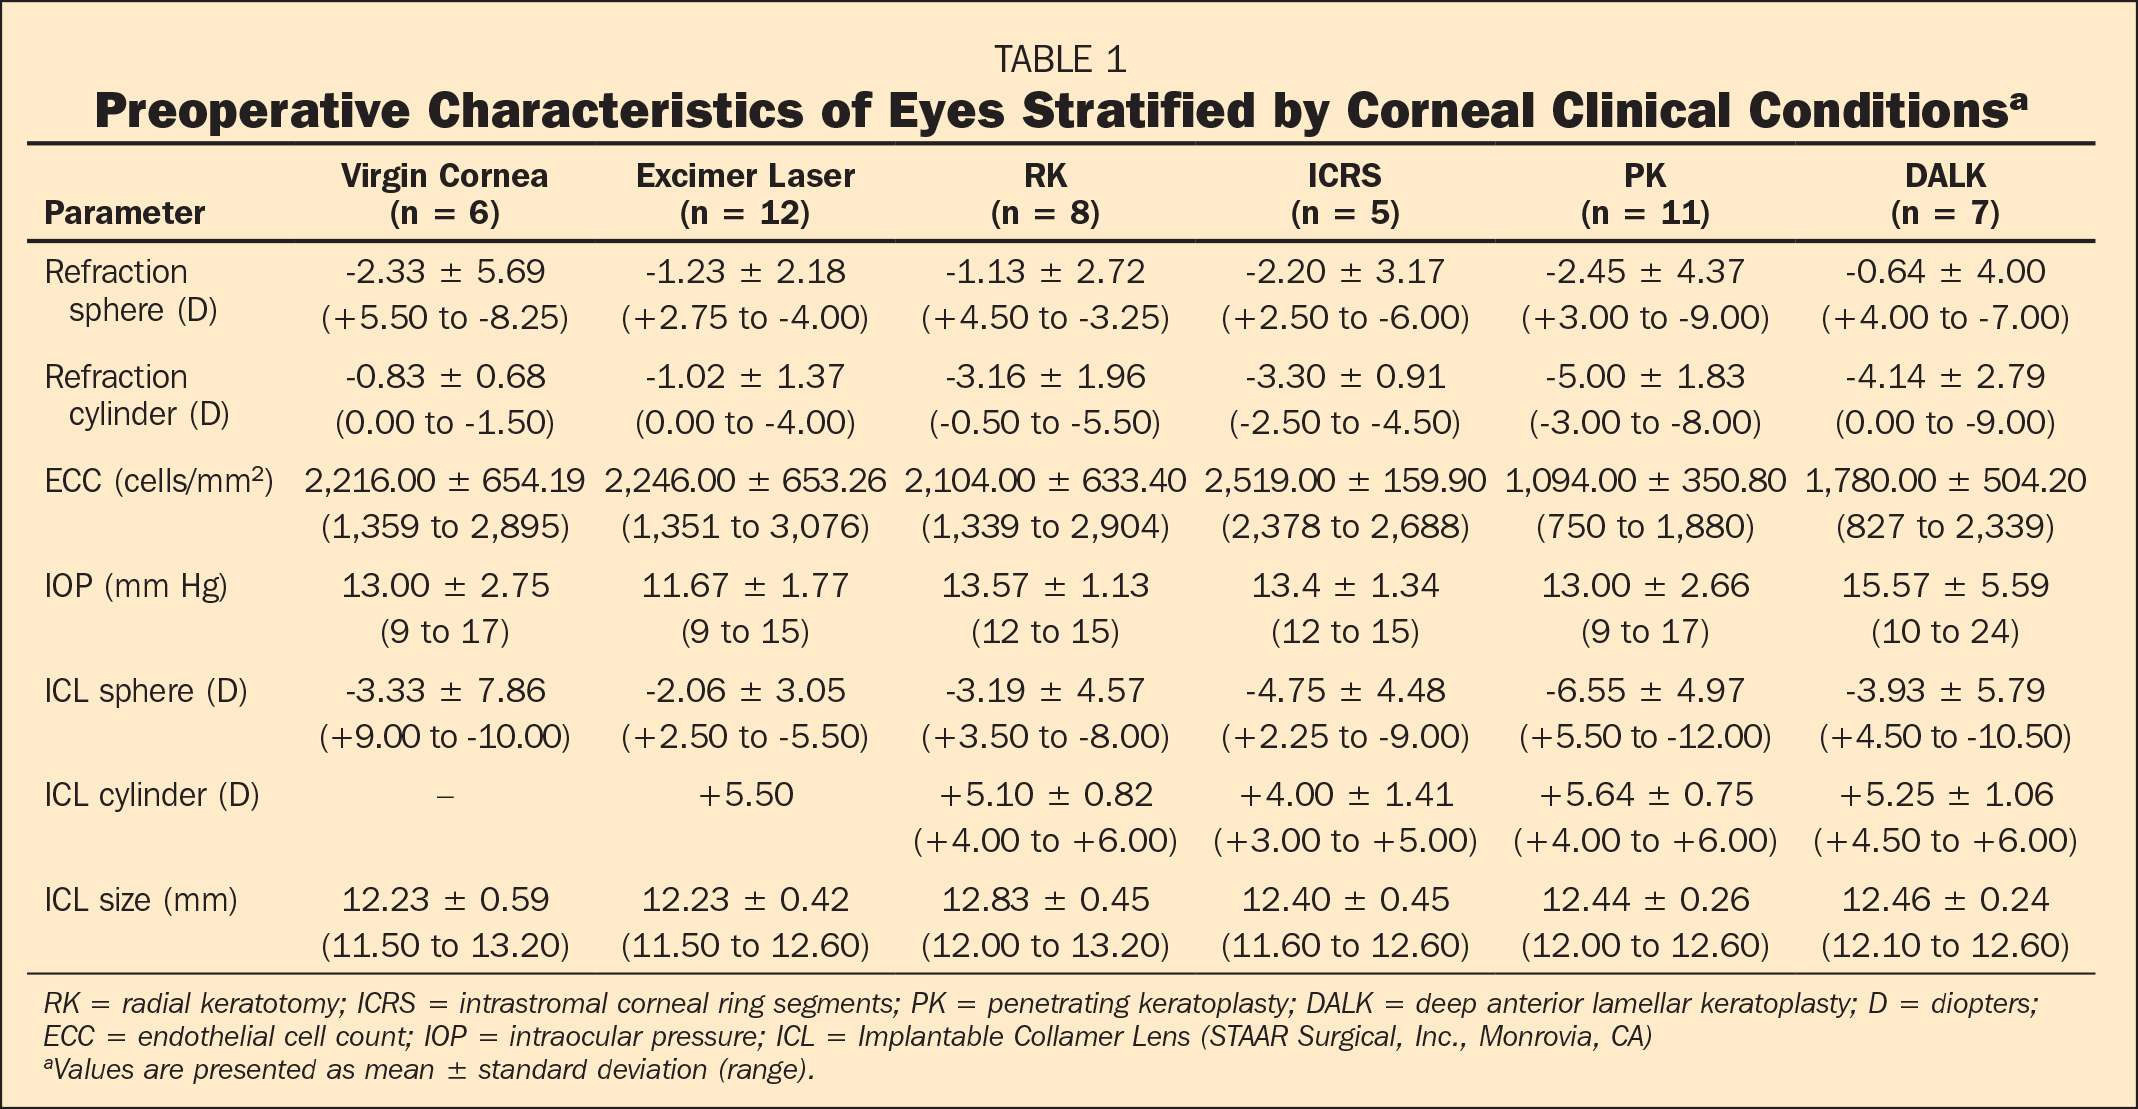 Preoperative Characteristics of Eyes Stratified by Corneal Clinical Conditionsa